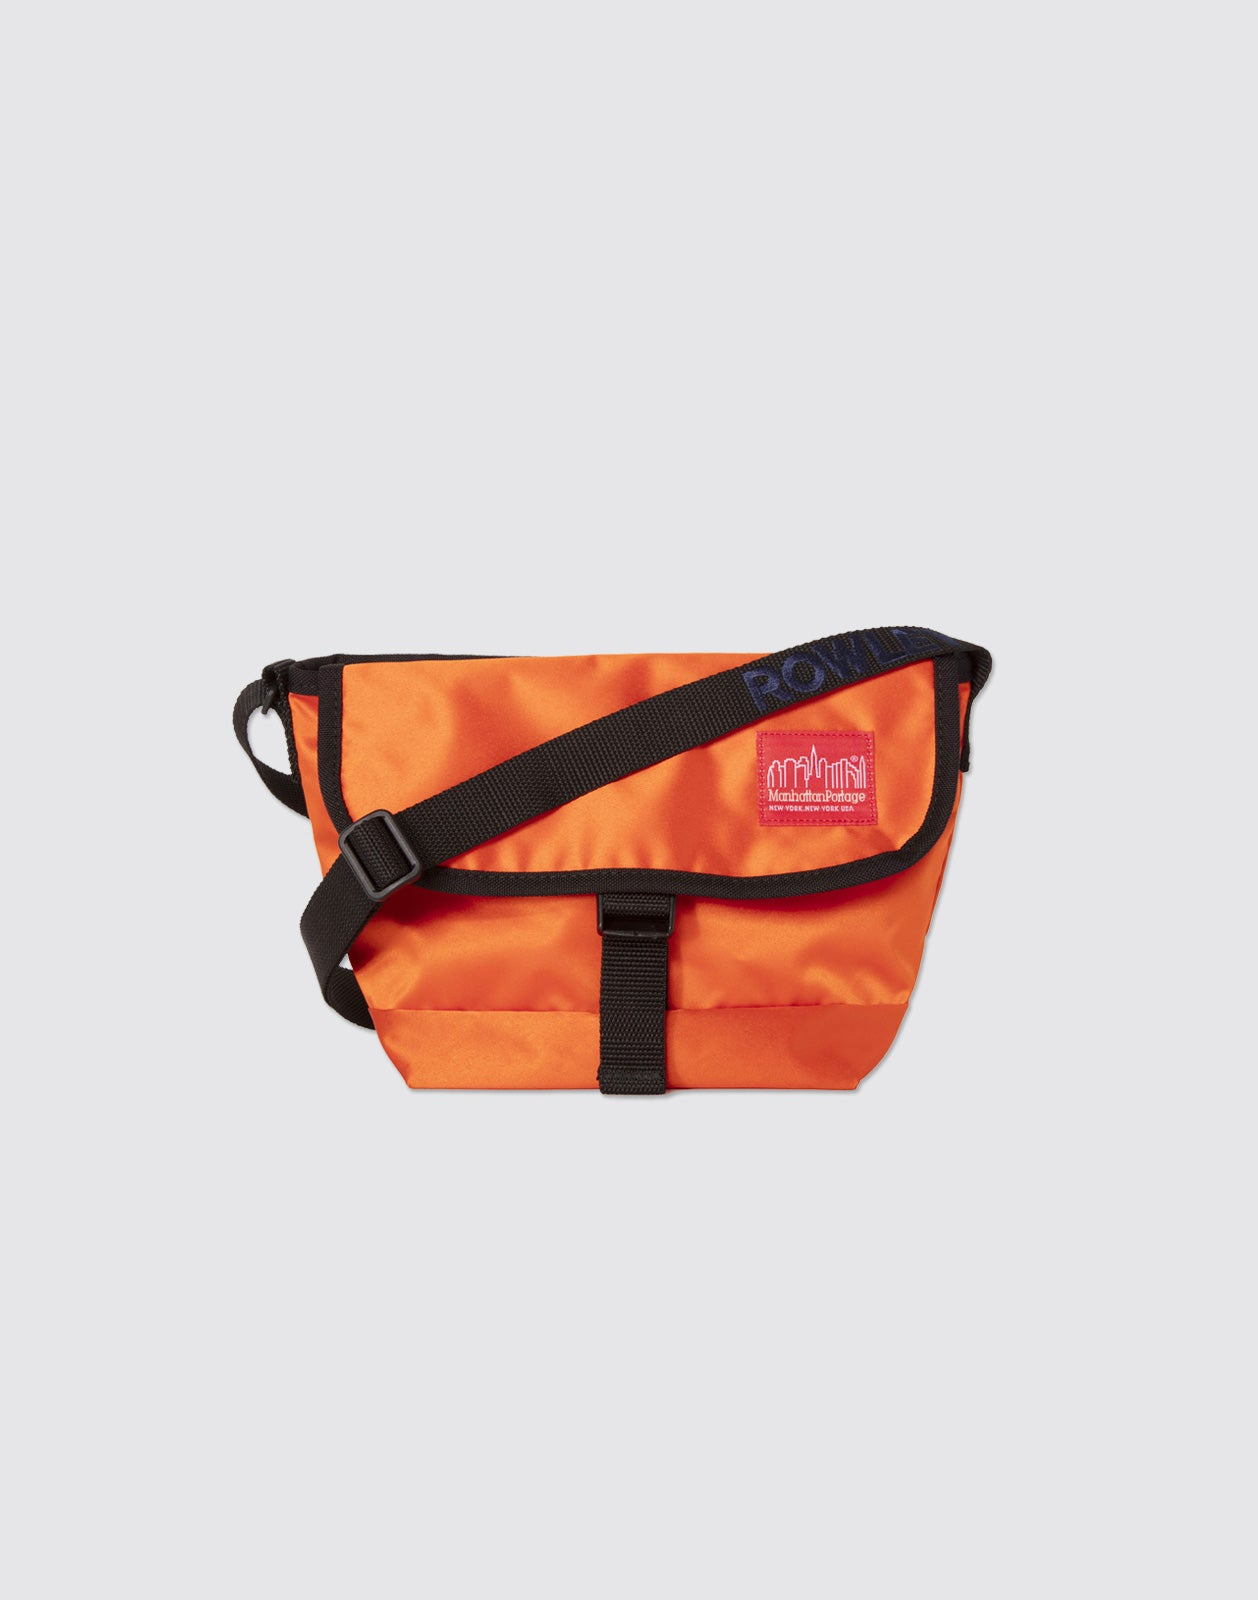 26dbfc810323 Front detail shot of Blood Orange Mini Manhattan Portage Messenger Bag with front  buckle and arm · Diagonal side ...